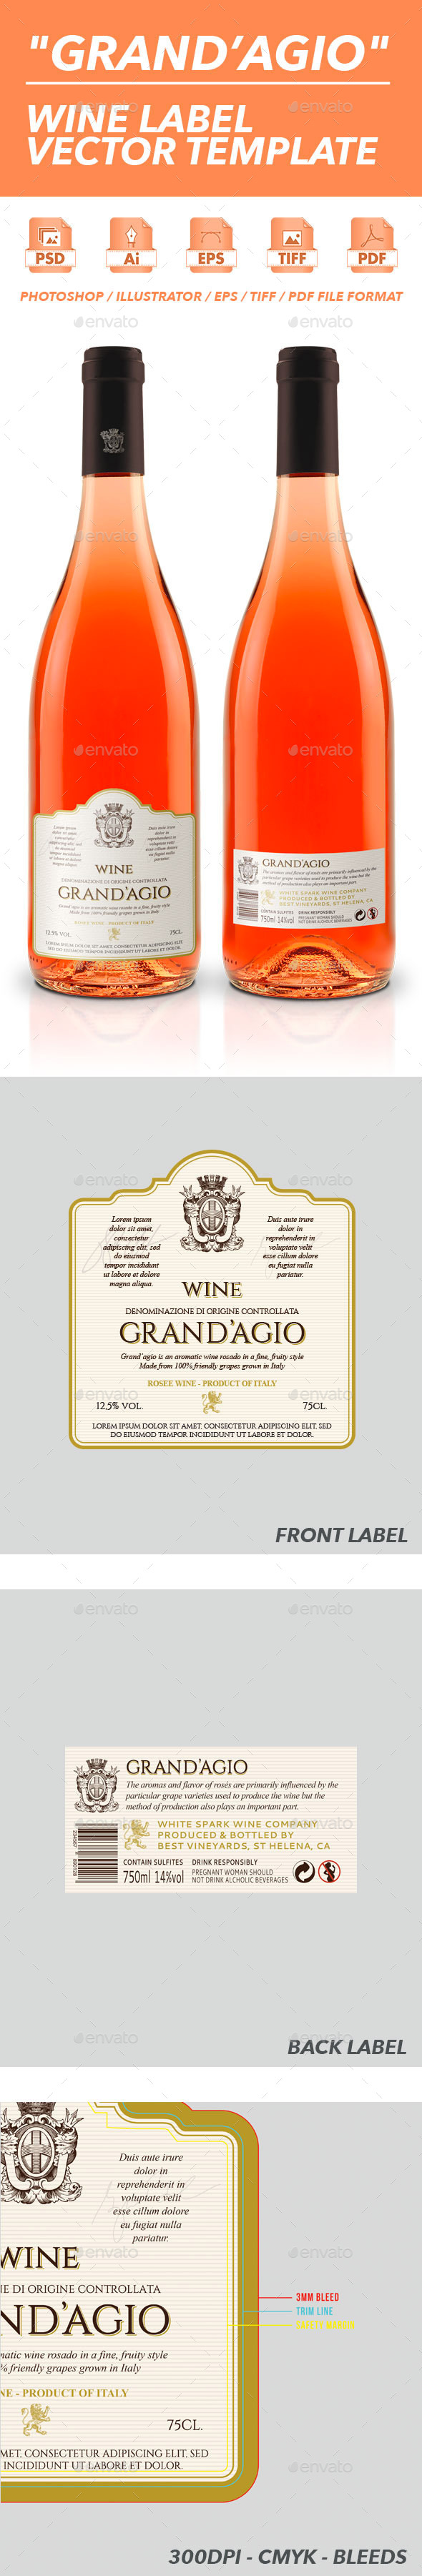 Grand'Agio - Wine Label Vector Template